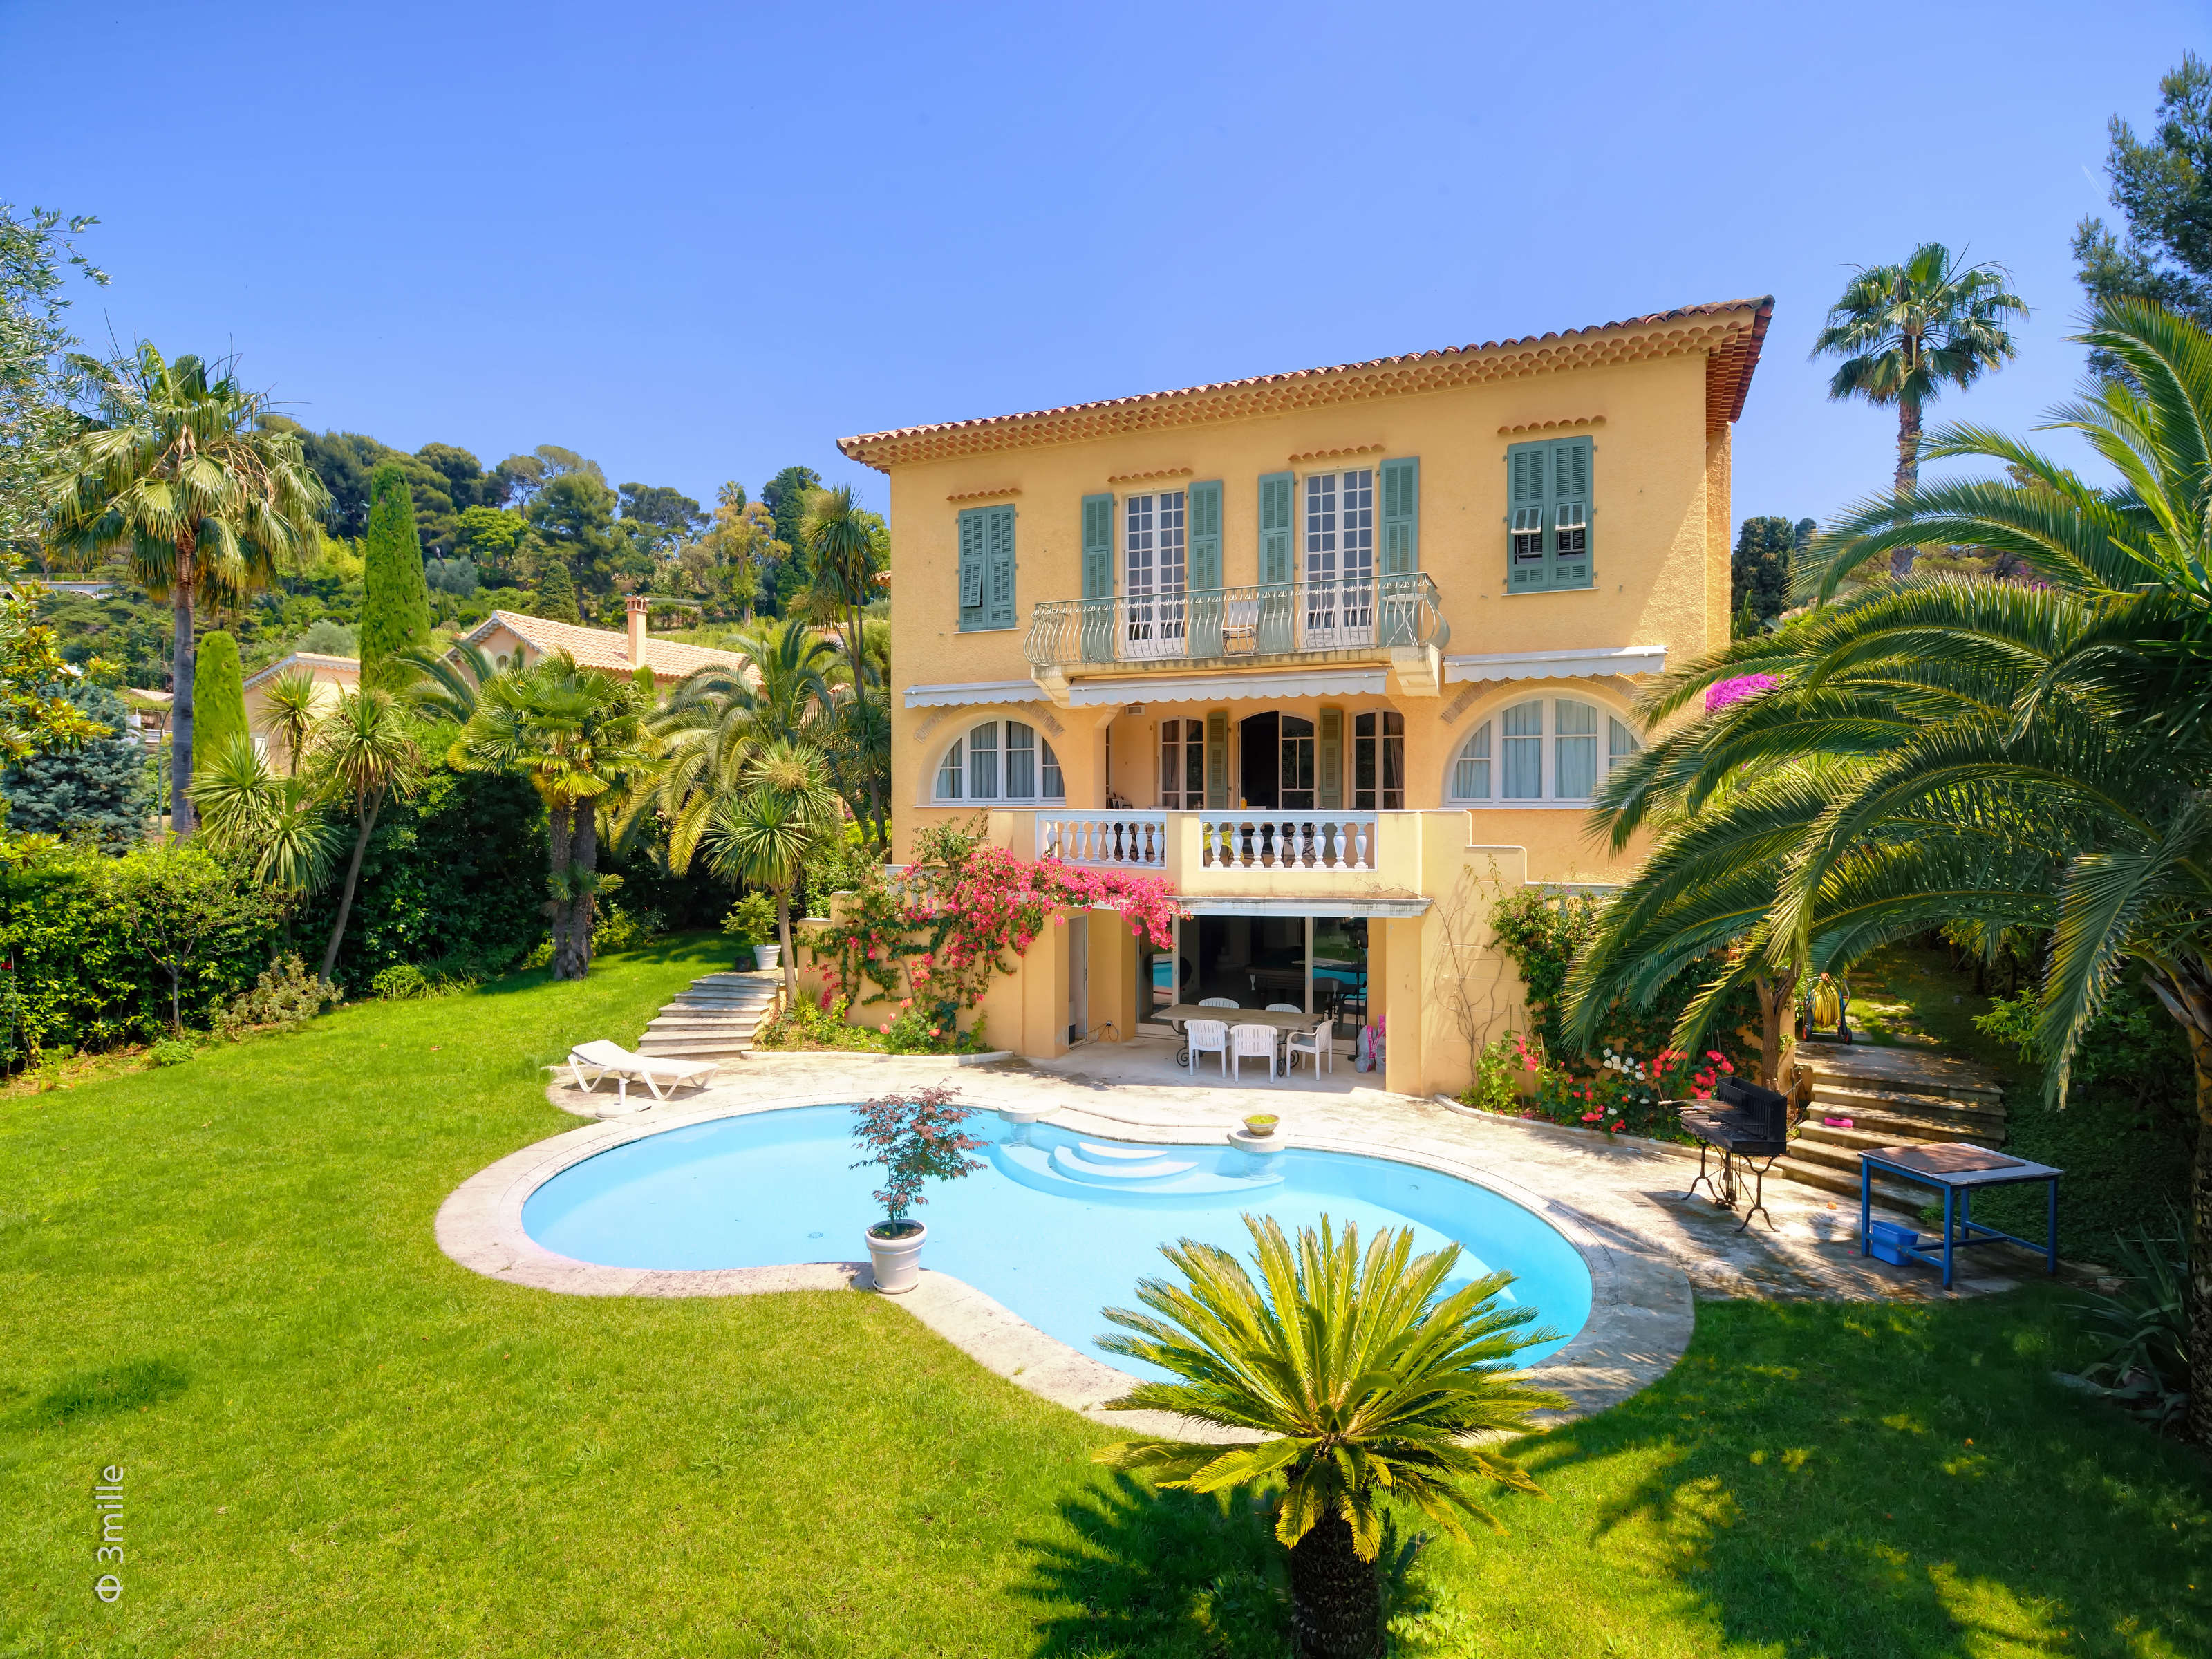 Single Family Home for Sale at Charming Villa for sale in a private domain, Cap Ferrat Saint Jean Cap Ferrat Saint Jean Cap Ferrat, Provence-Alpes-Cote D'Azur 06230 France